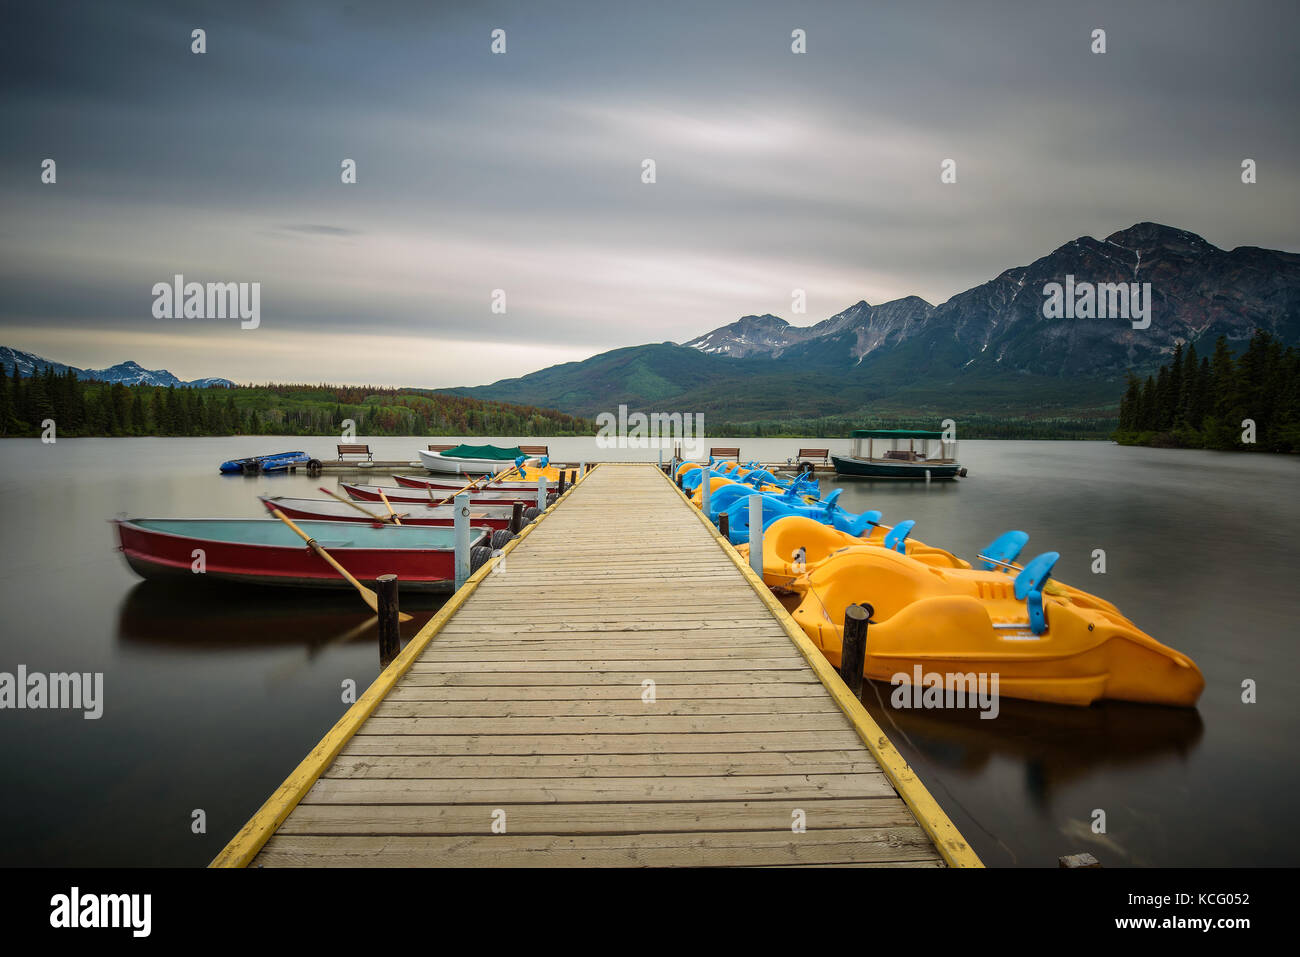 Boats on a jetty on the Pyramid Lake in Jasper National Park, Canada - Stock Image